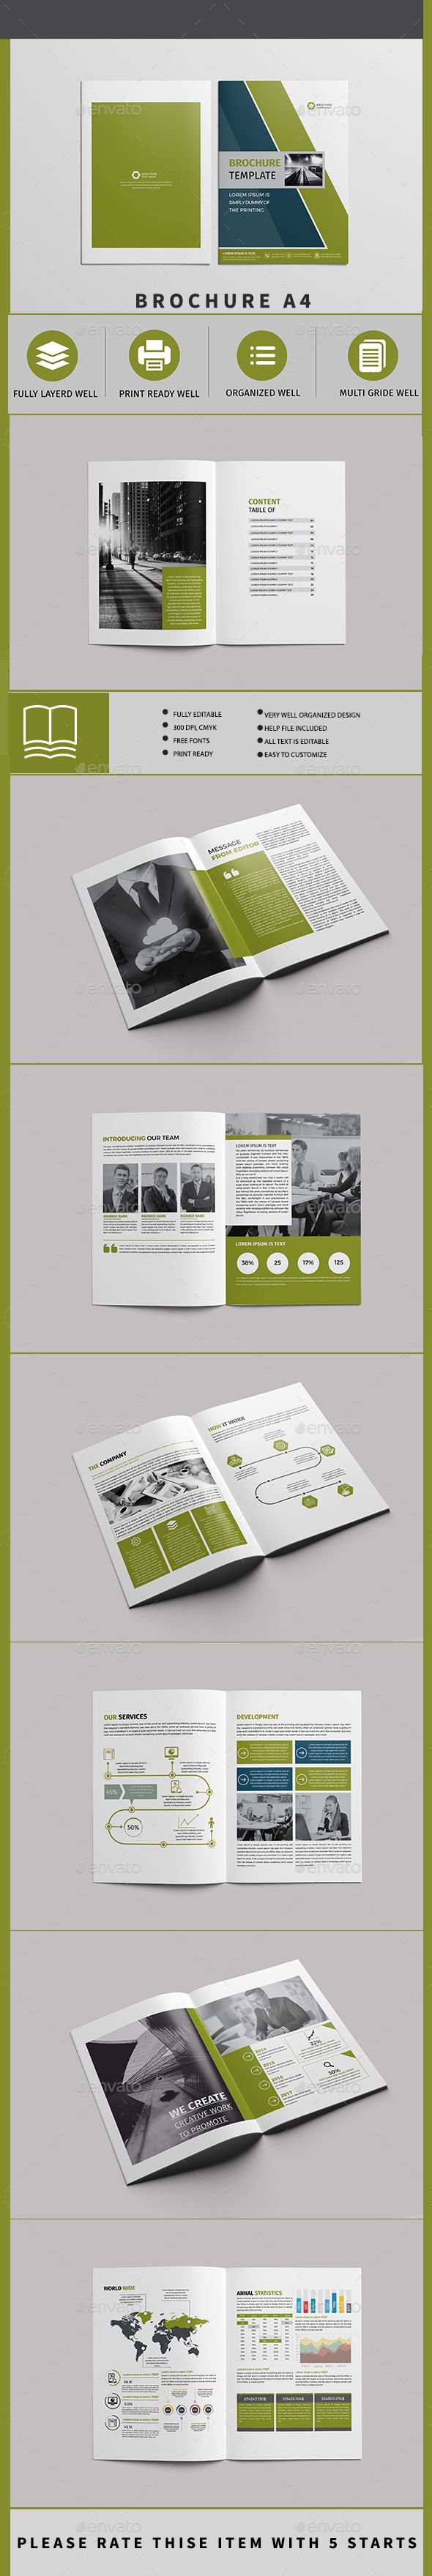 Pretty 1 Page Website Template Thin 1 Week Calendar Template Flat 10 Envelope Template 2 Circle Label Template Young 2 Page Resume Format Header Soft20 Piece Puzzle Template 25  Best Ideas About Brochure Template On Pinterest | Brochure ..